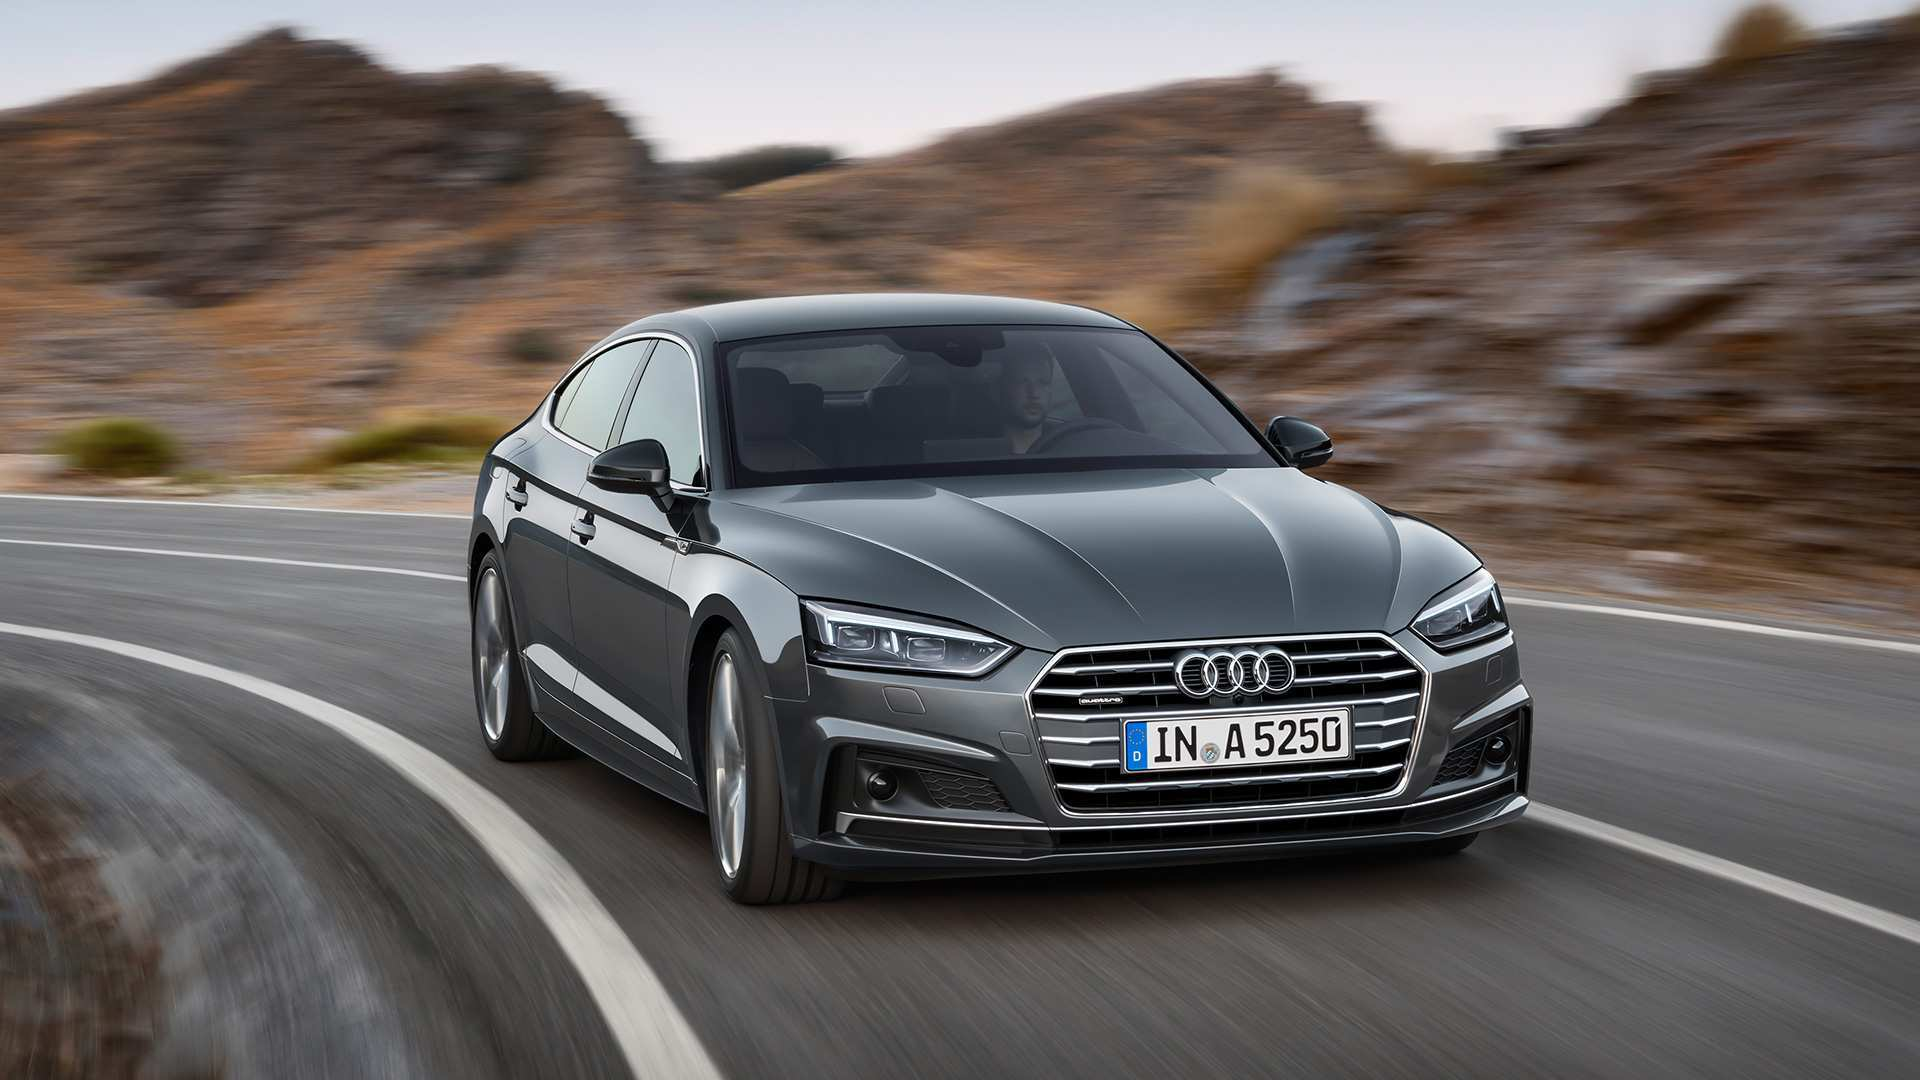 43 New 2019 Audi A5 Concept And Review